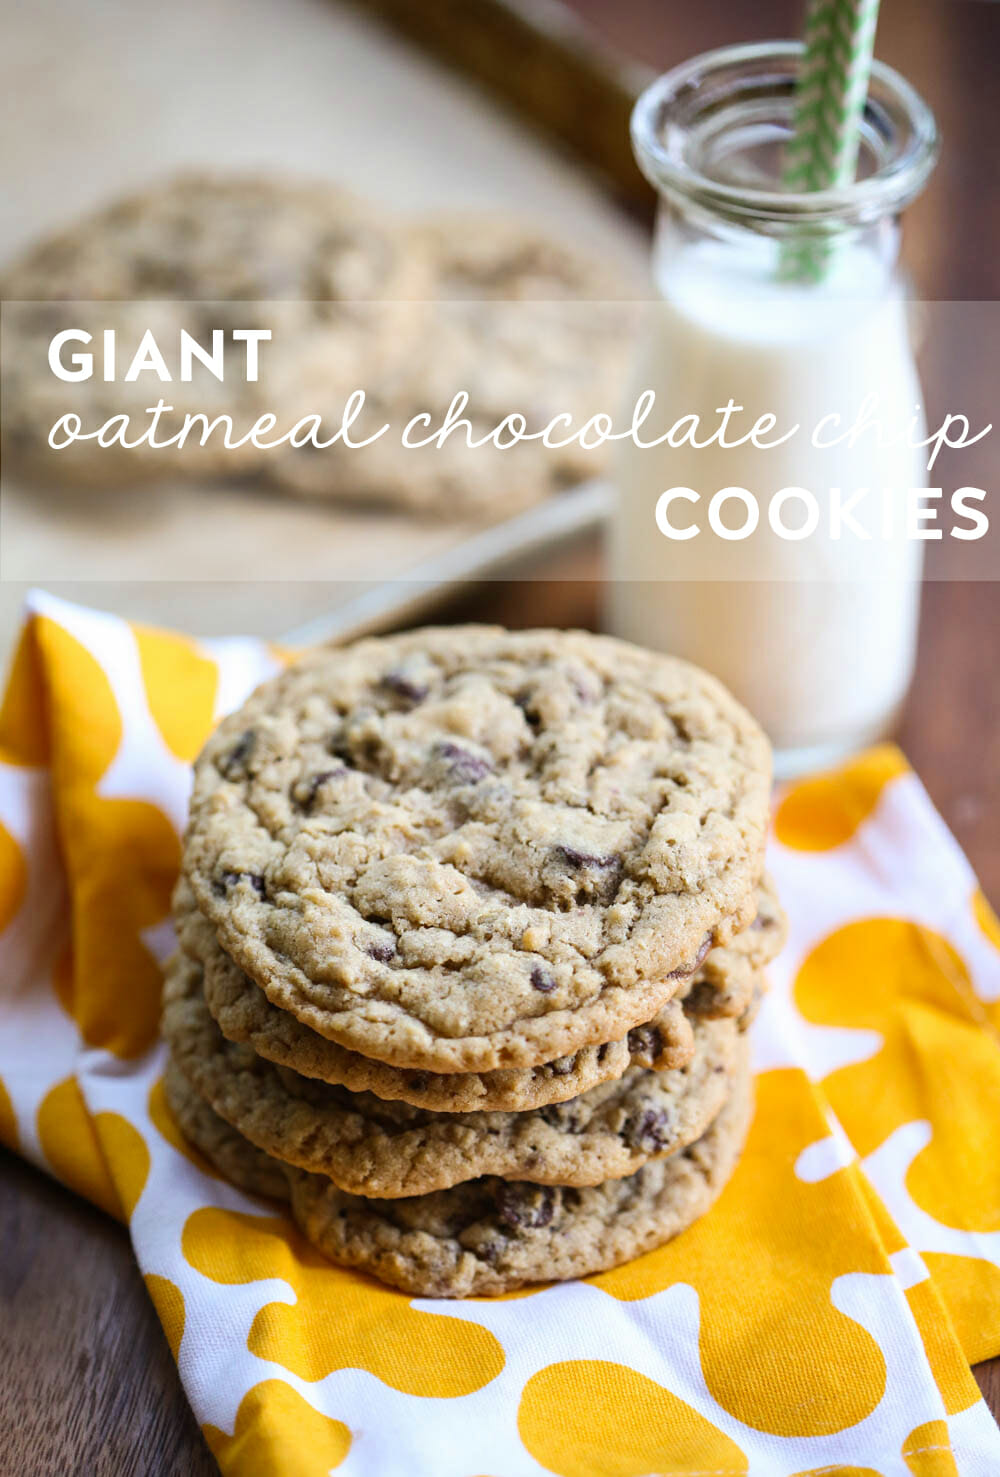 Giant Oatmeal Chocolate Chip Cookies Our Best Bites